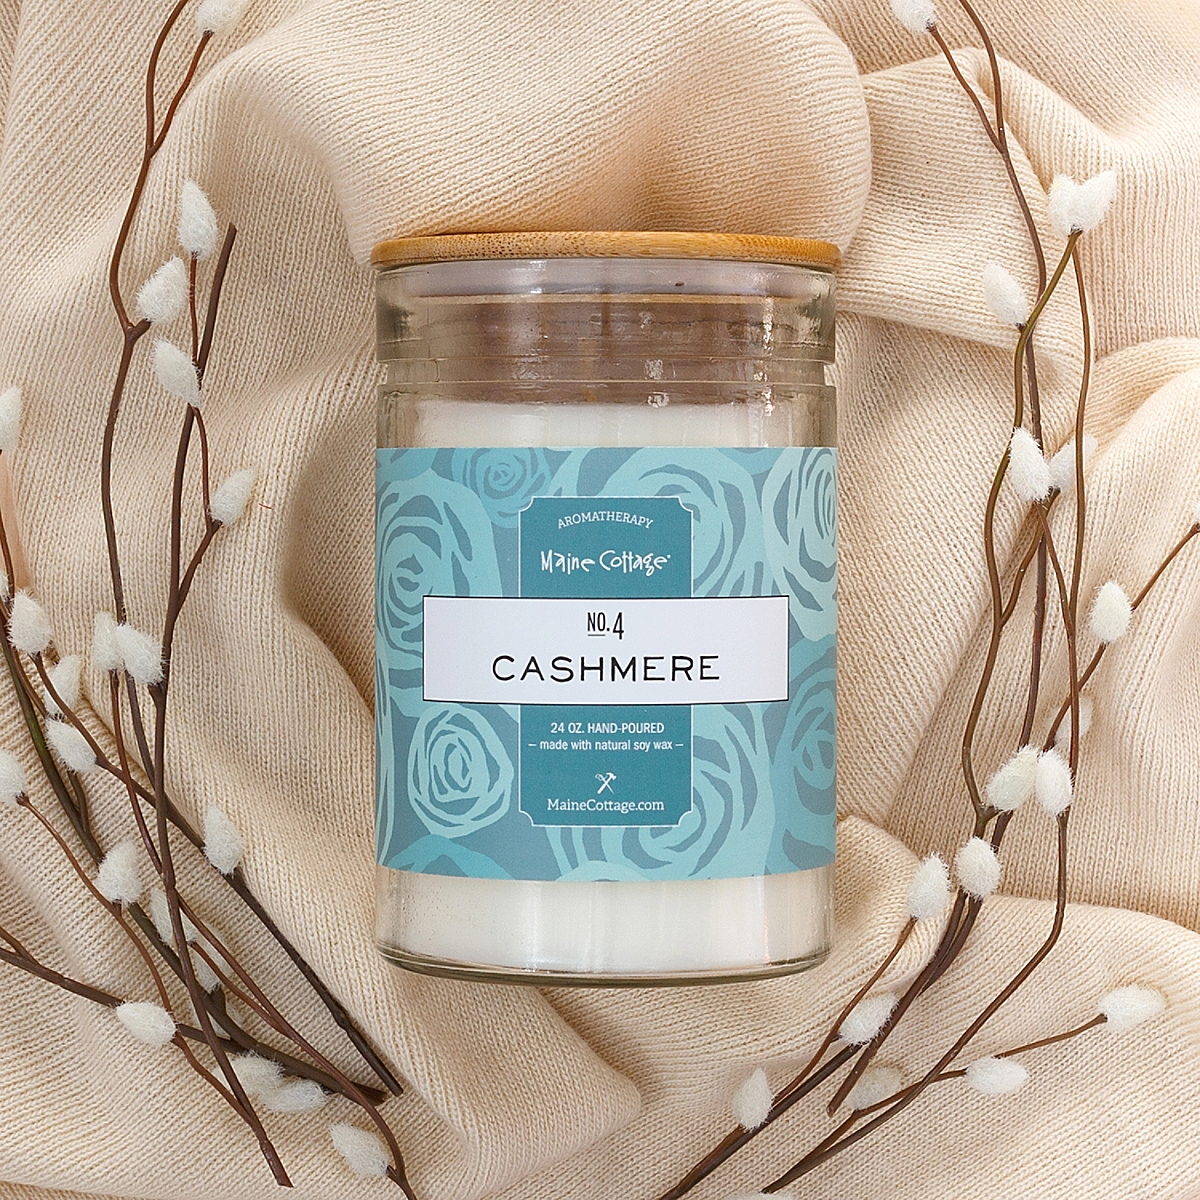 Cashmere Candle – 24 oz.